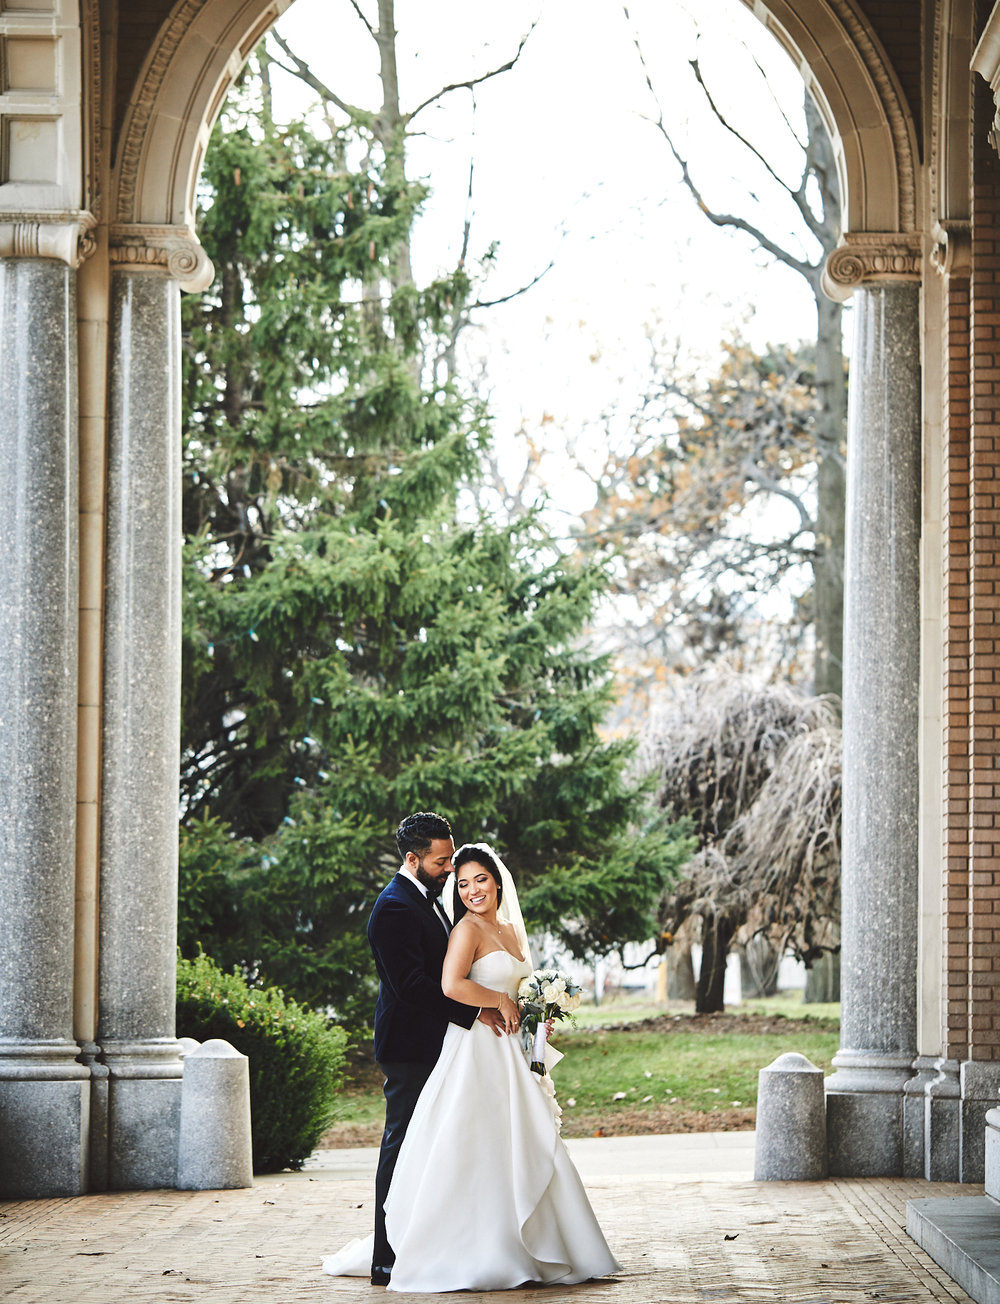 181201_TheTidesEstateWinterWeddingPhotography_ModernNJWeddingPhotographer_By_BriJohnsonWeddings_0106.jpg